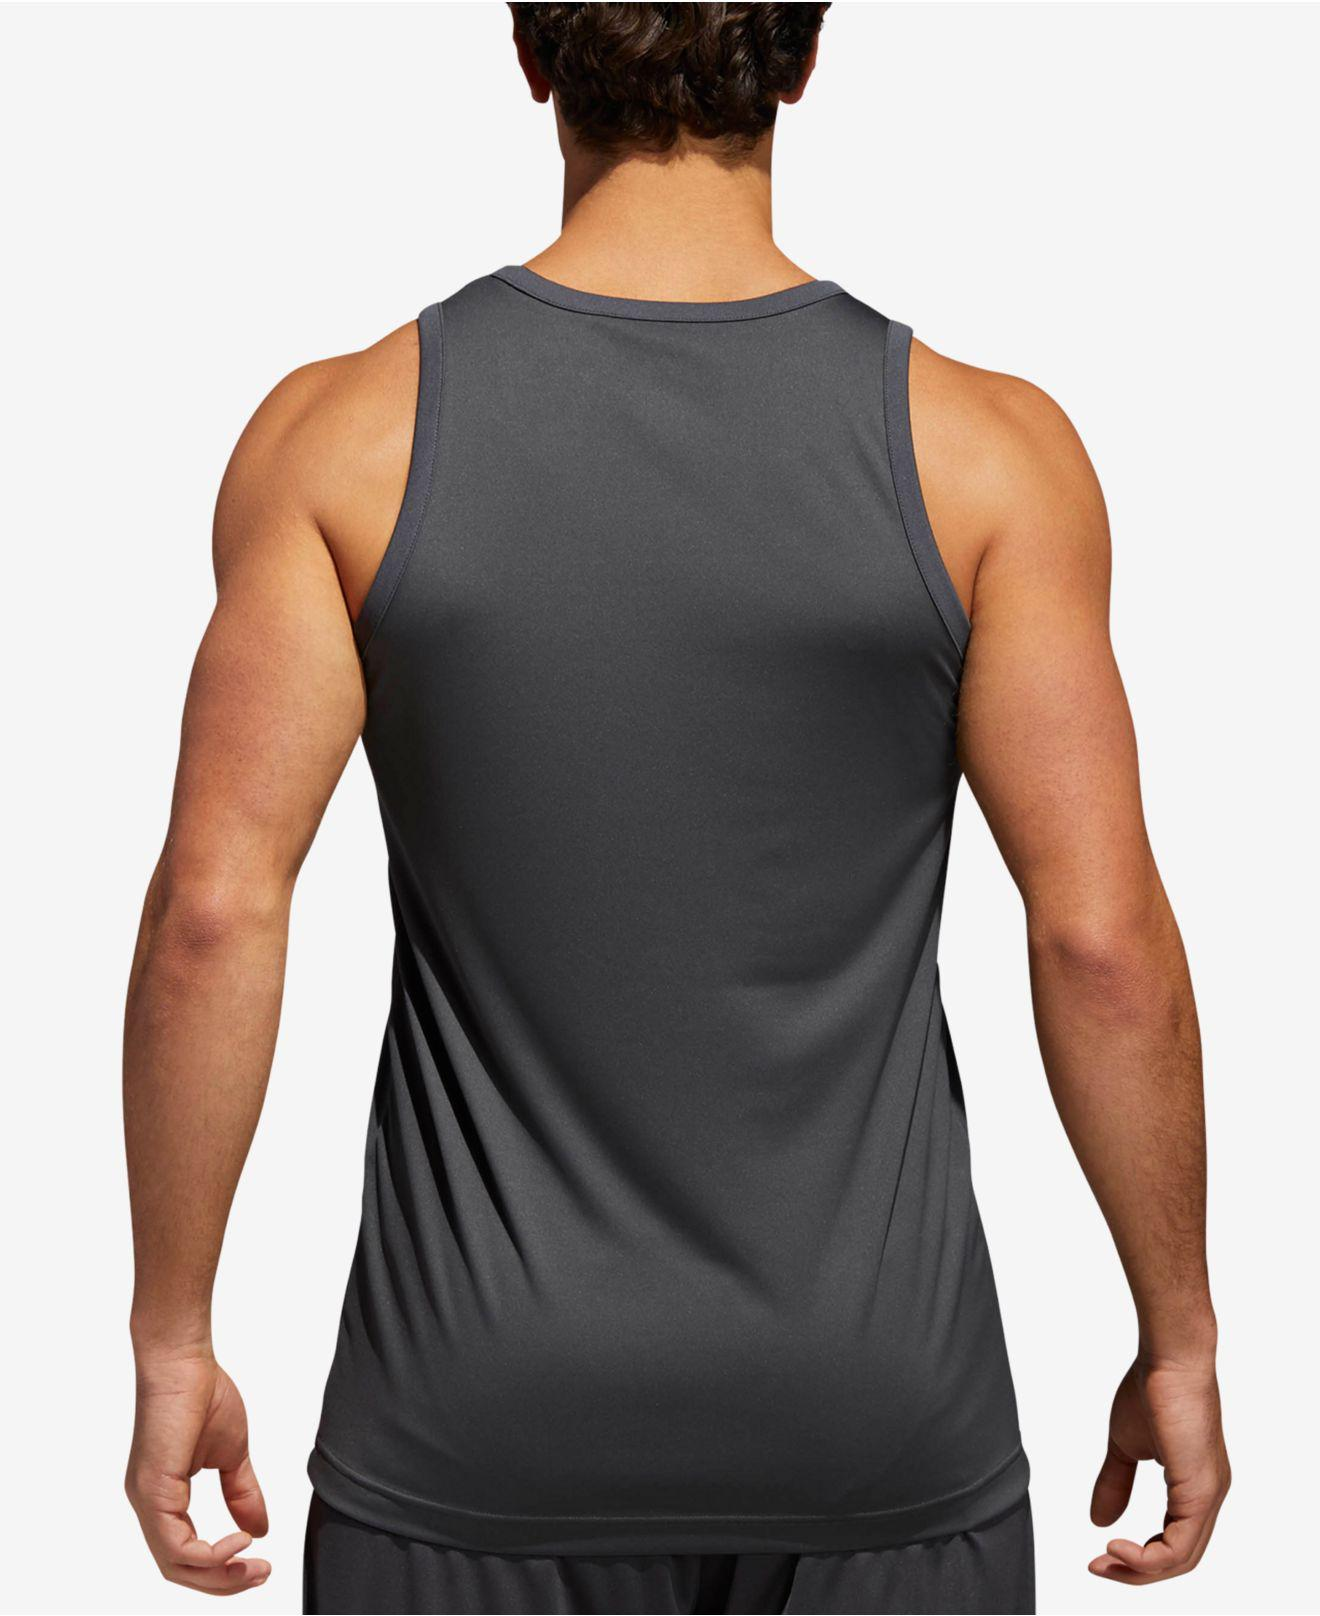 0f9a77a9ab790 Lyst - adidas Basketball Tank Top in Gray for Men